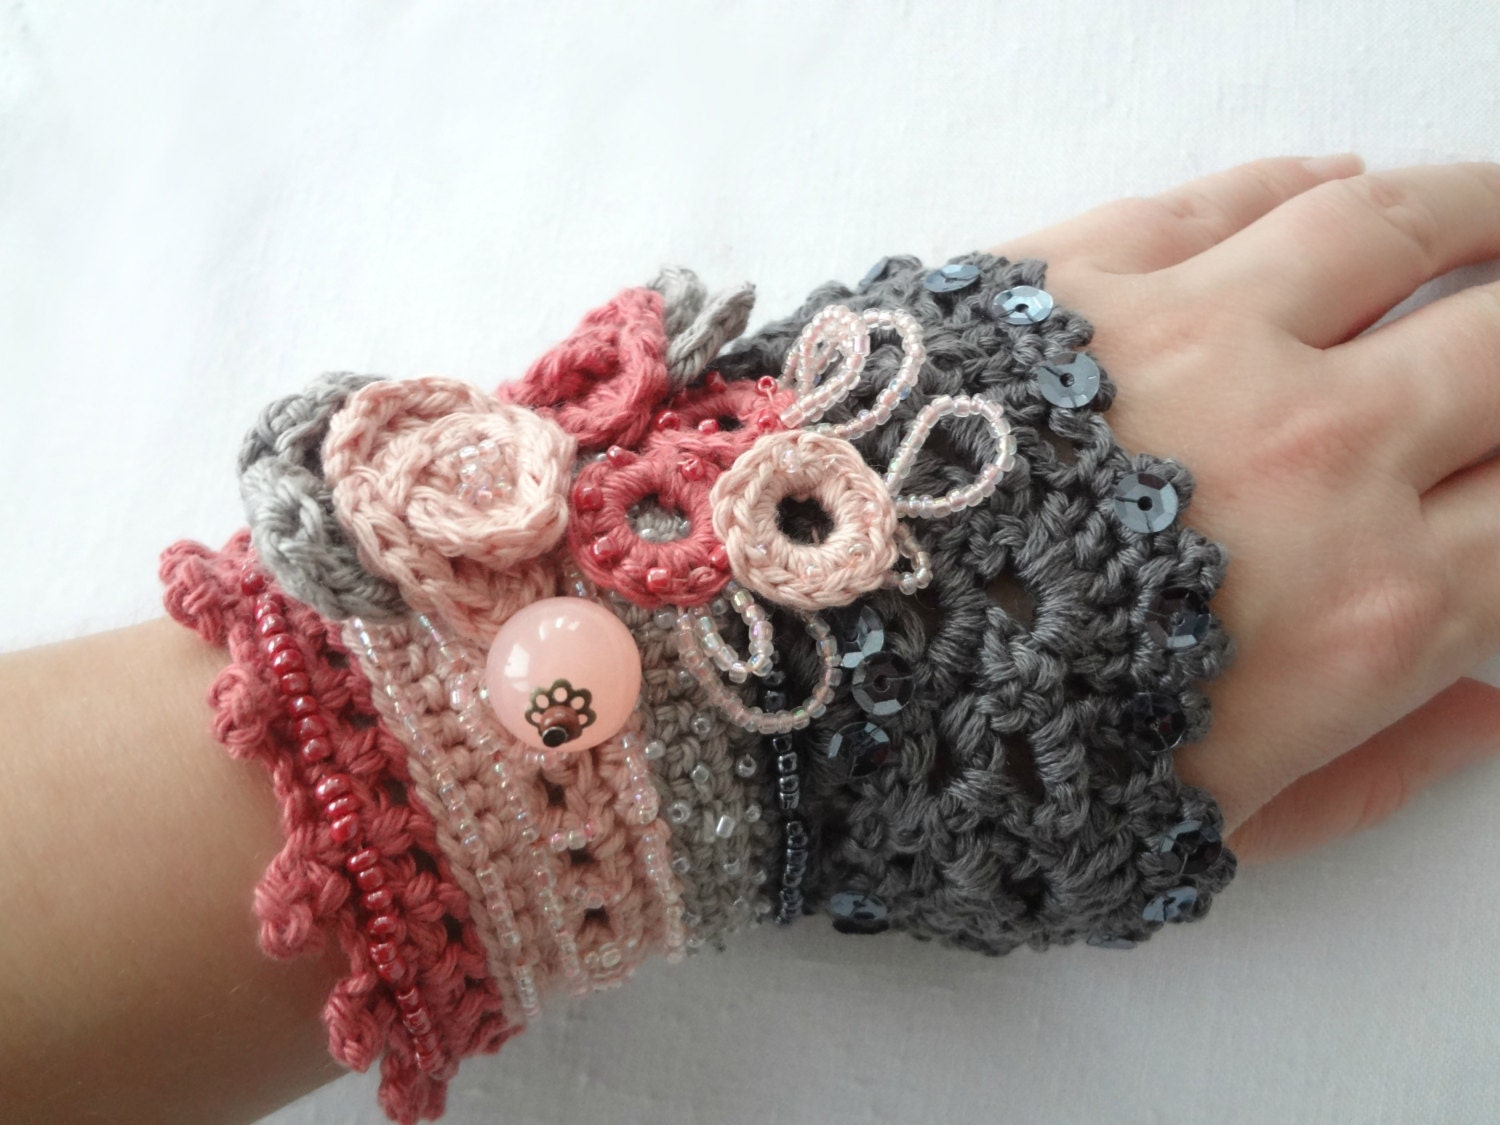 DIGITAL CROCHET PATTERN Roses in Bloom Crochet Cuff